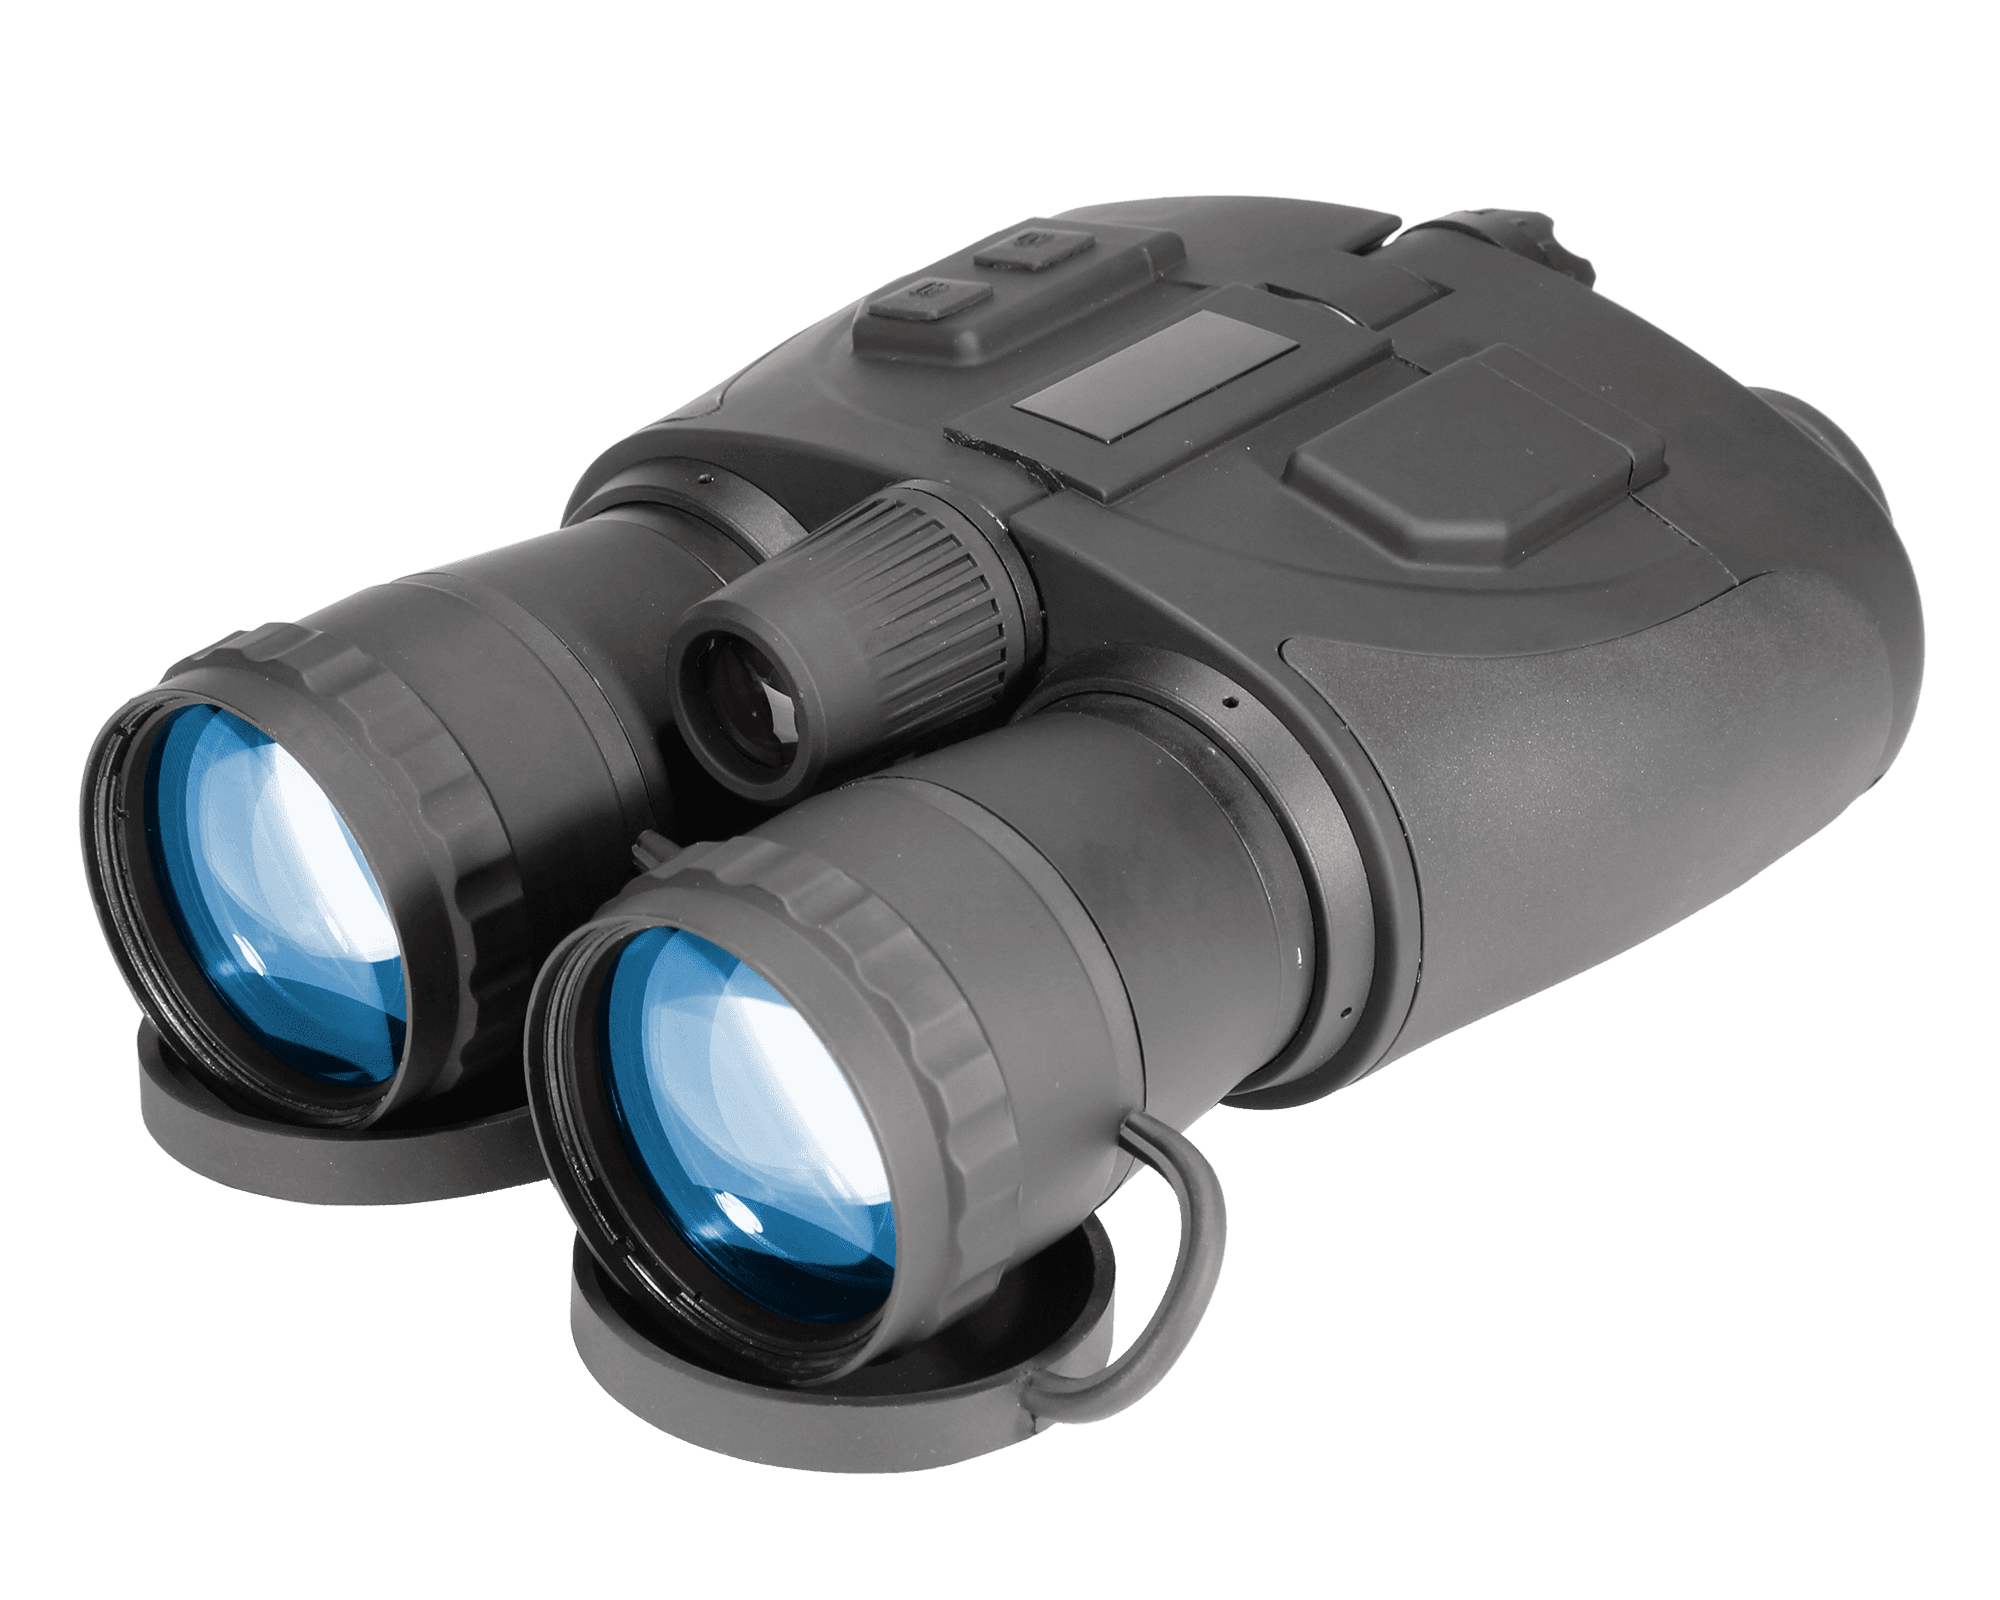 amt nv 360 night vision manual